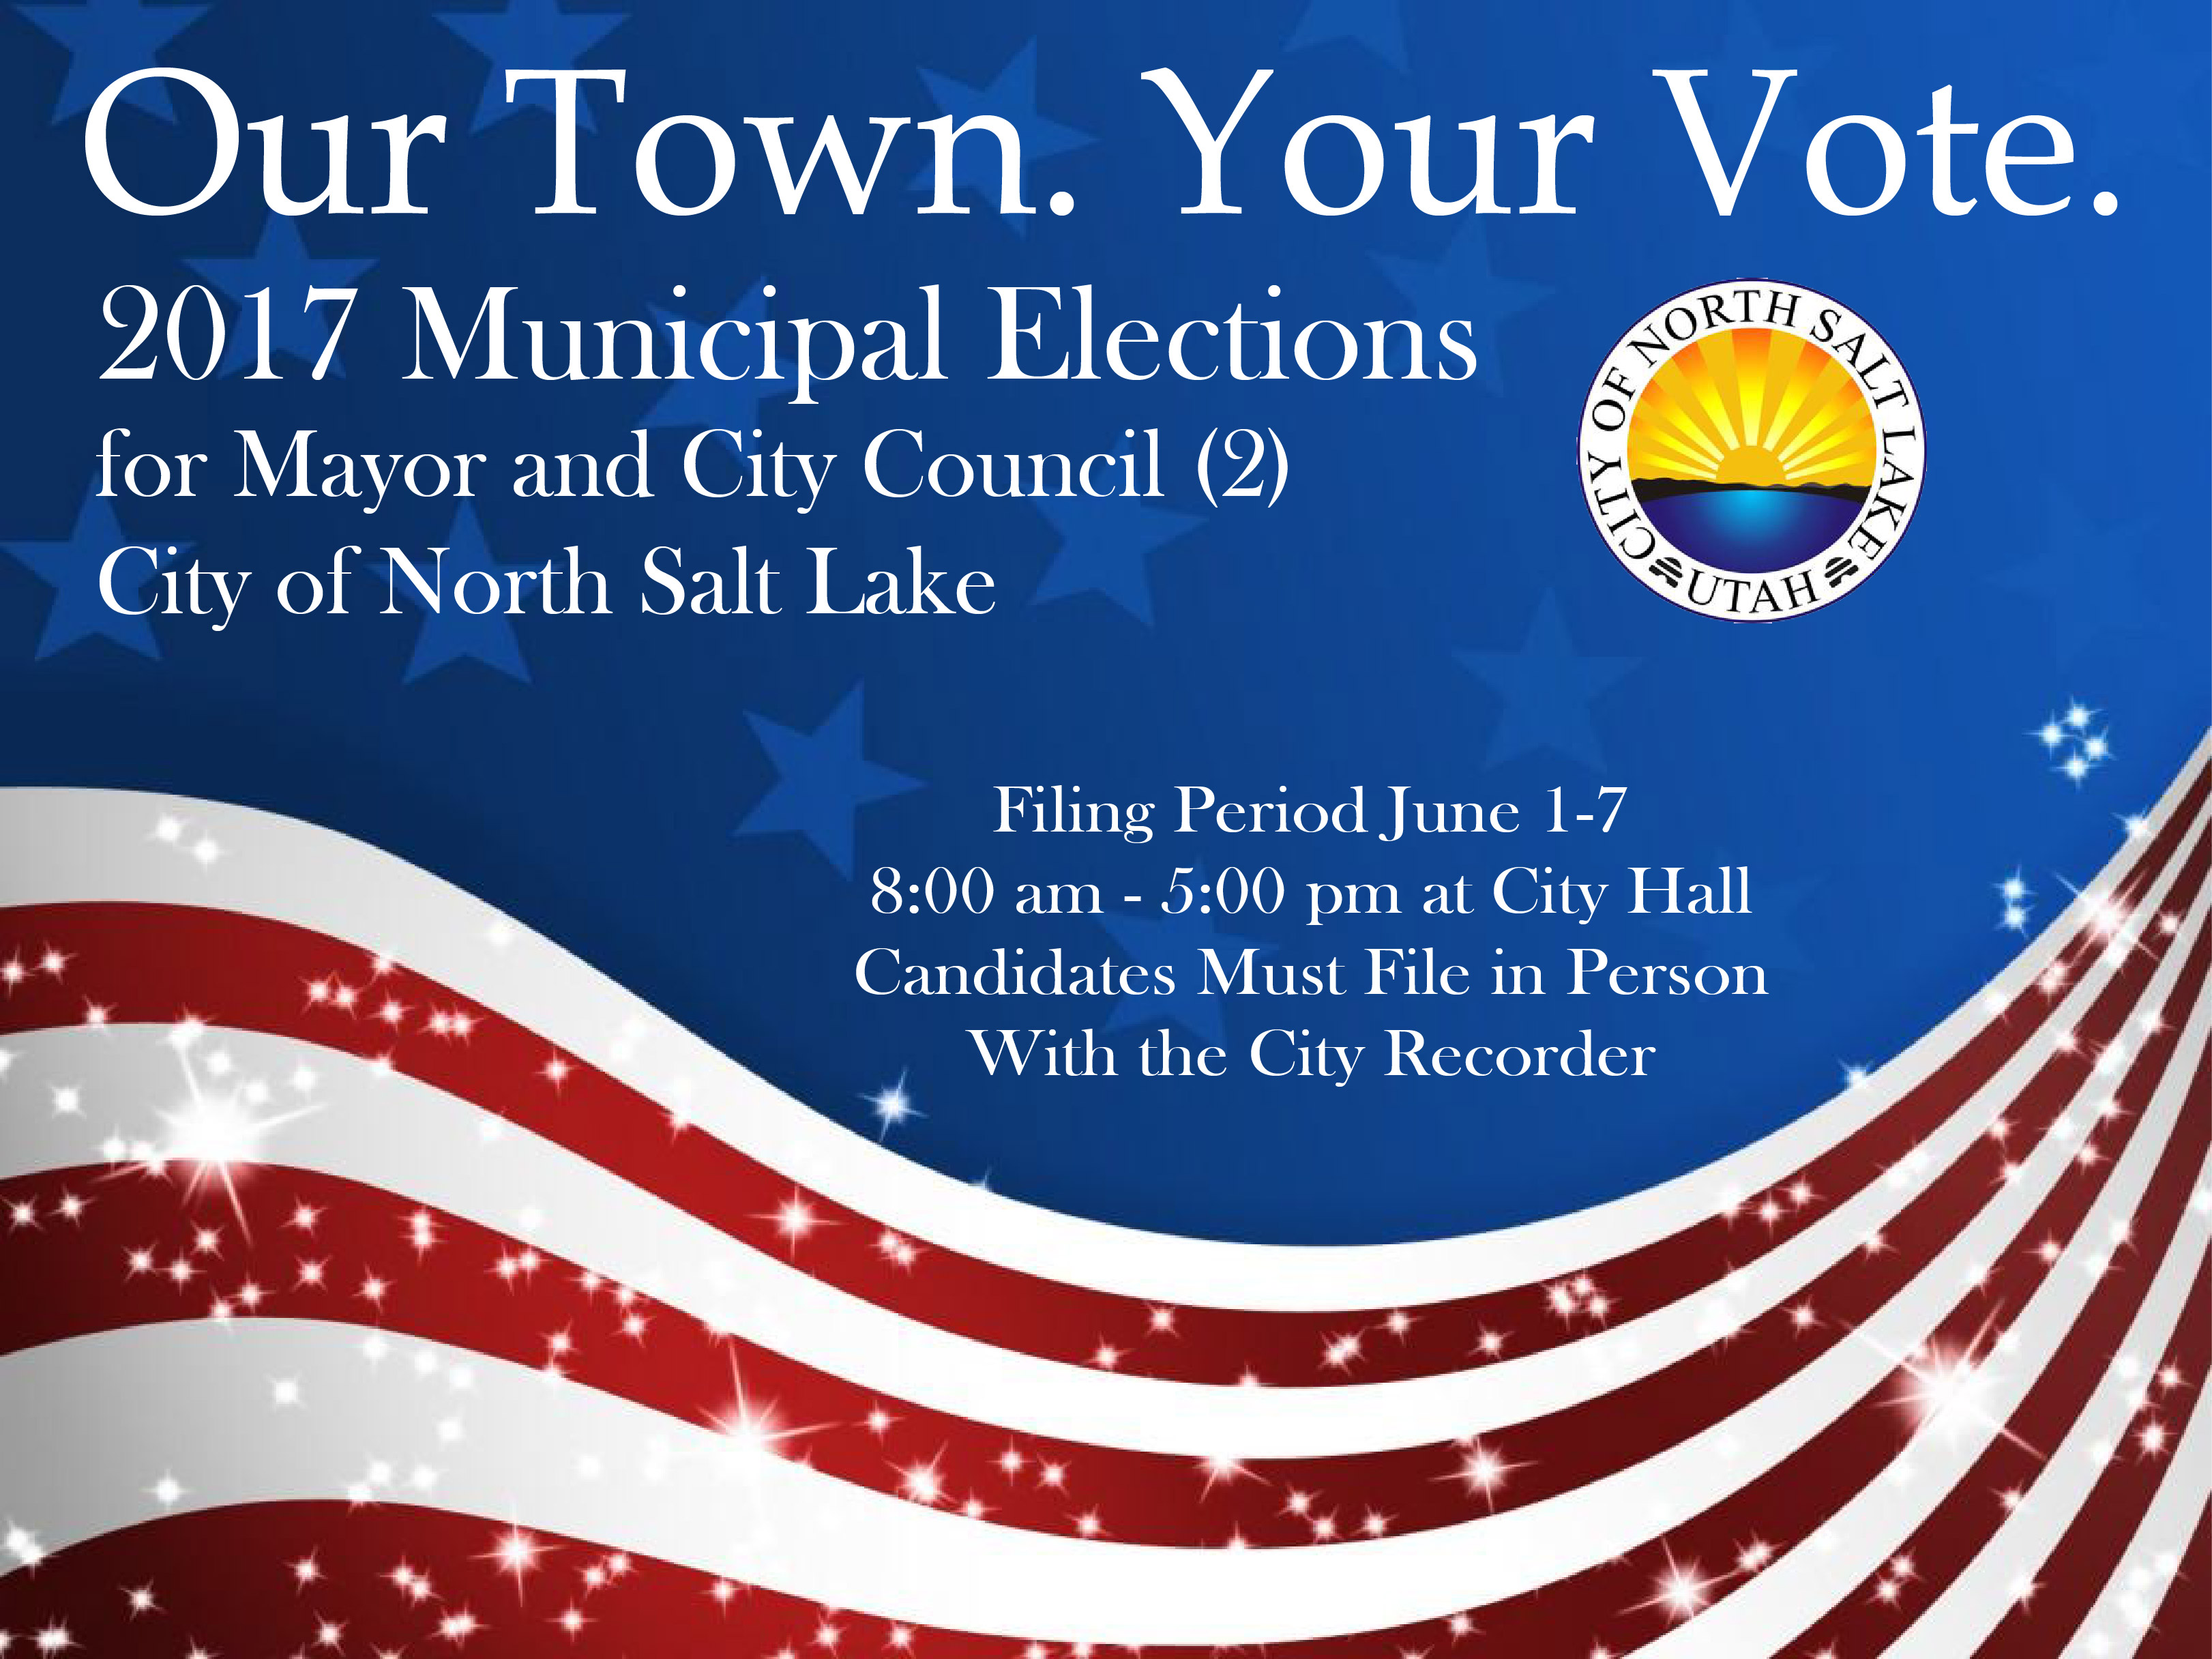 Our Town Your Vote Filing Period 2.jpg